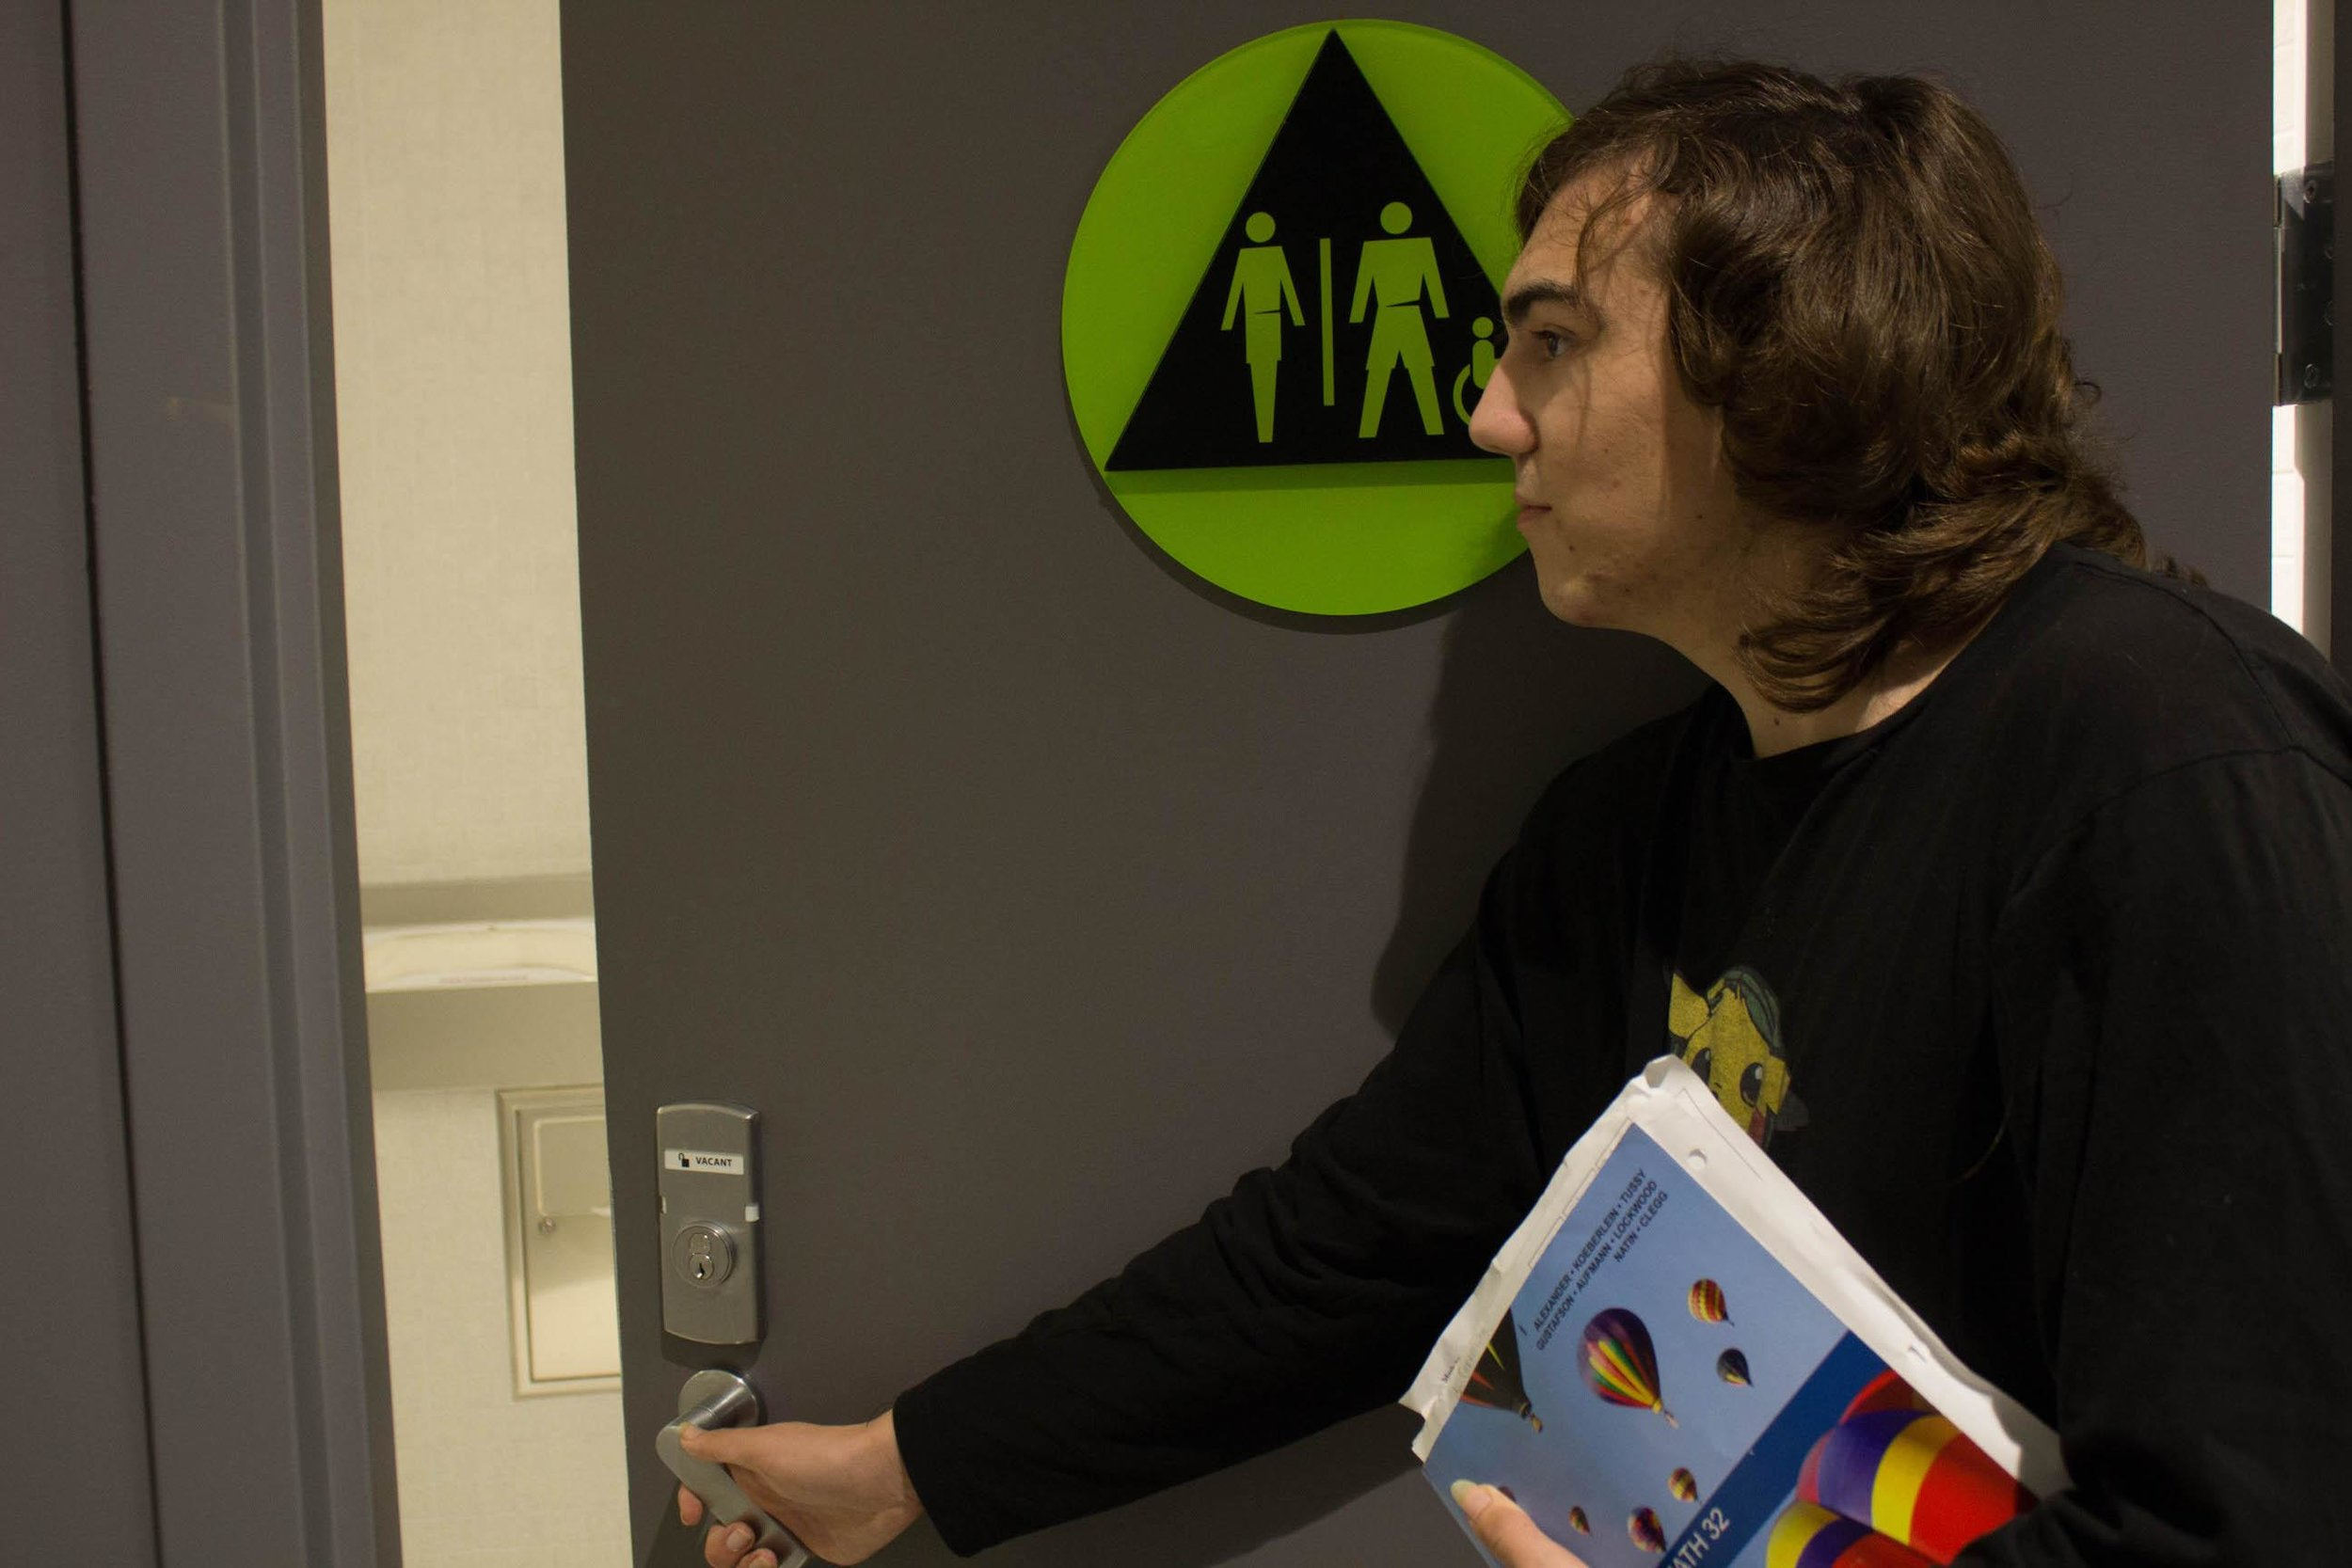 Santa Monica College Computer Science major, Sylvia Manson, 19, shown at the Gender Neutral restroom in the Core Performance Center, on the SMC Main Campus in Santa Monica, Calif. , Monday March 20, 2017. Manson is a transgender woman and GSA member (The Gender Sexuality Alliance Club) who isn't comfortable using the none gender neutral restrooms. Photo by Emeline Moquillon.